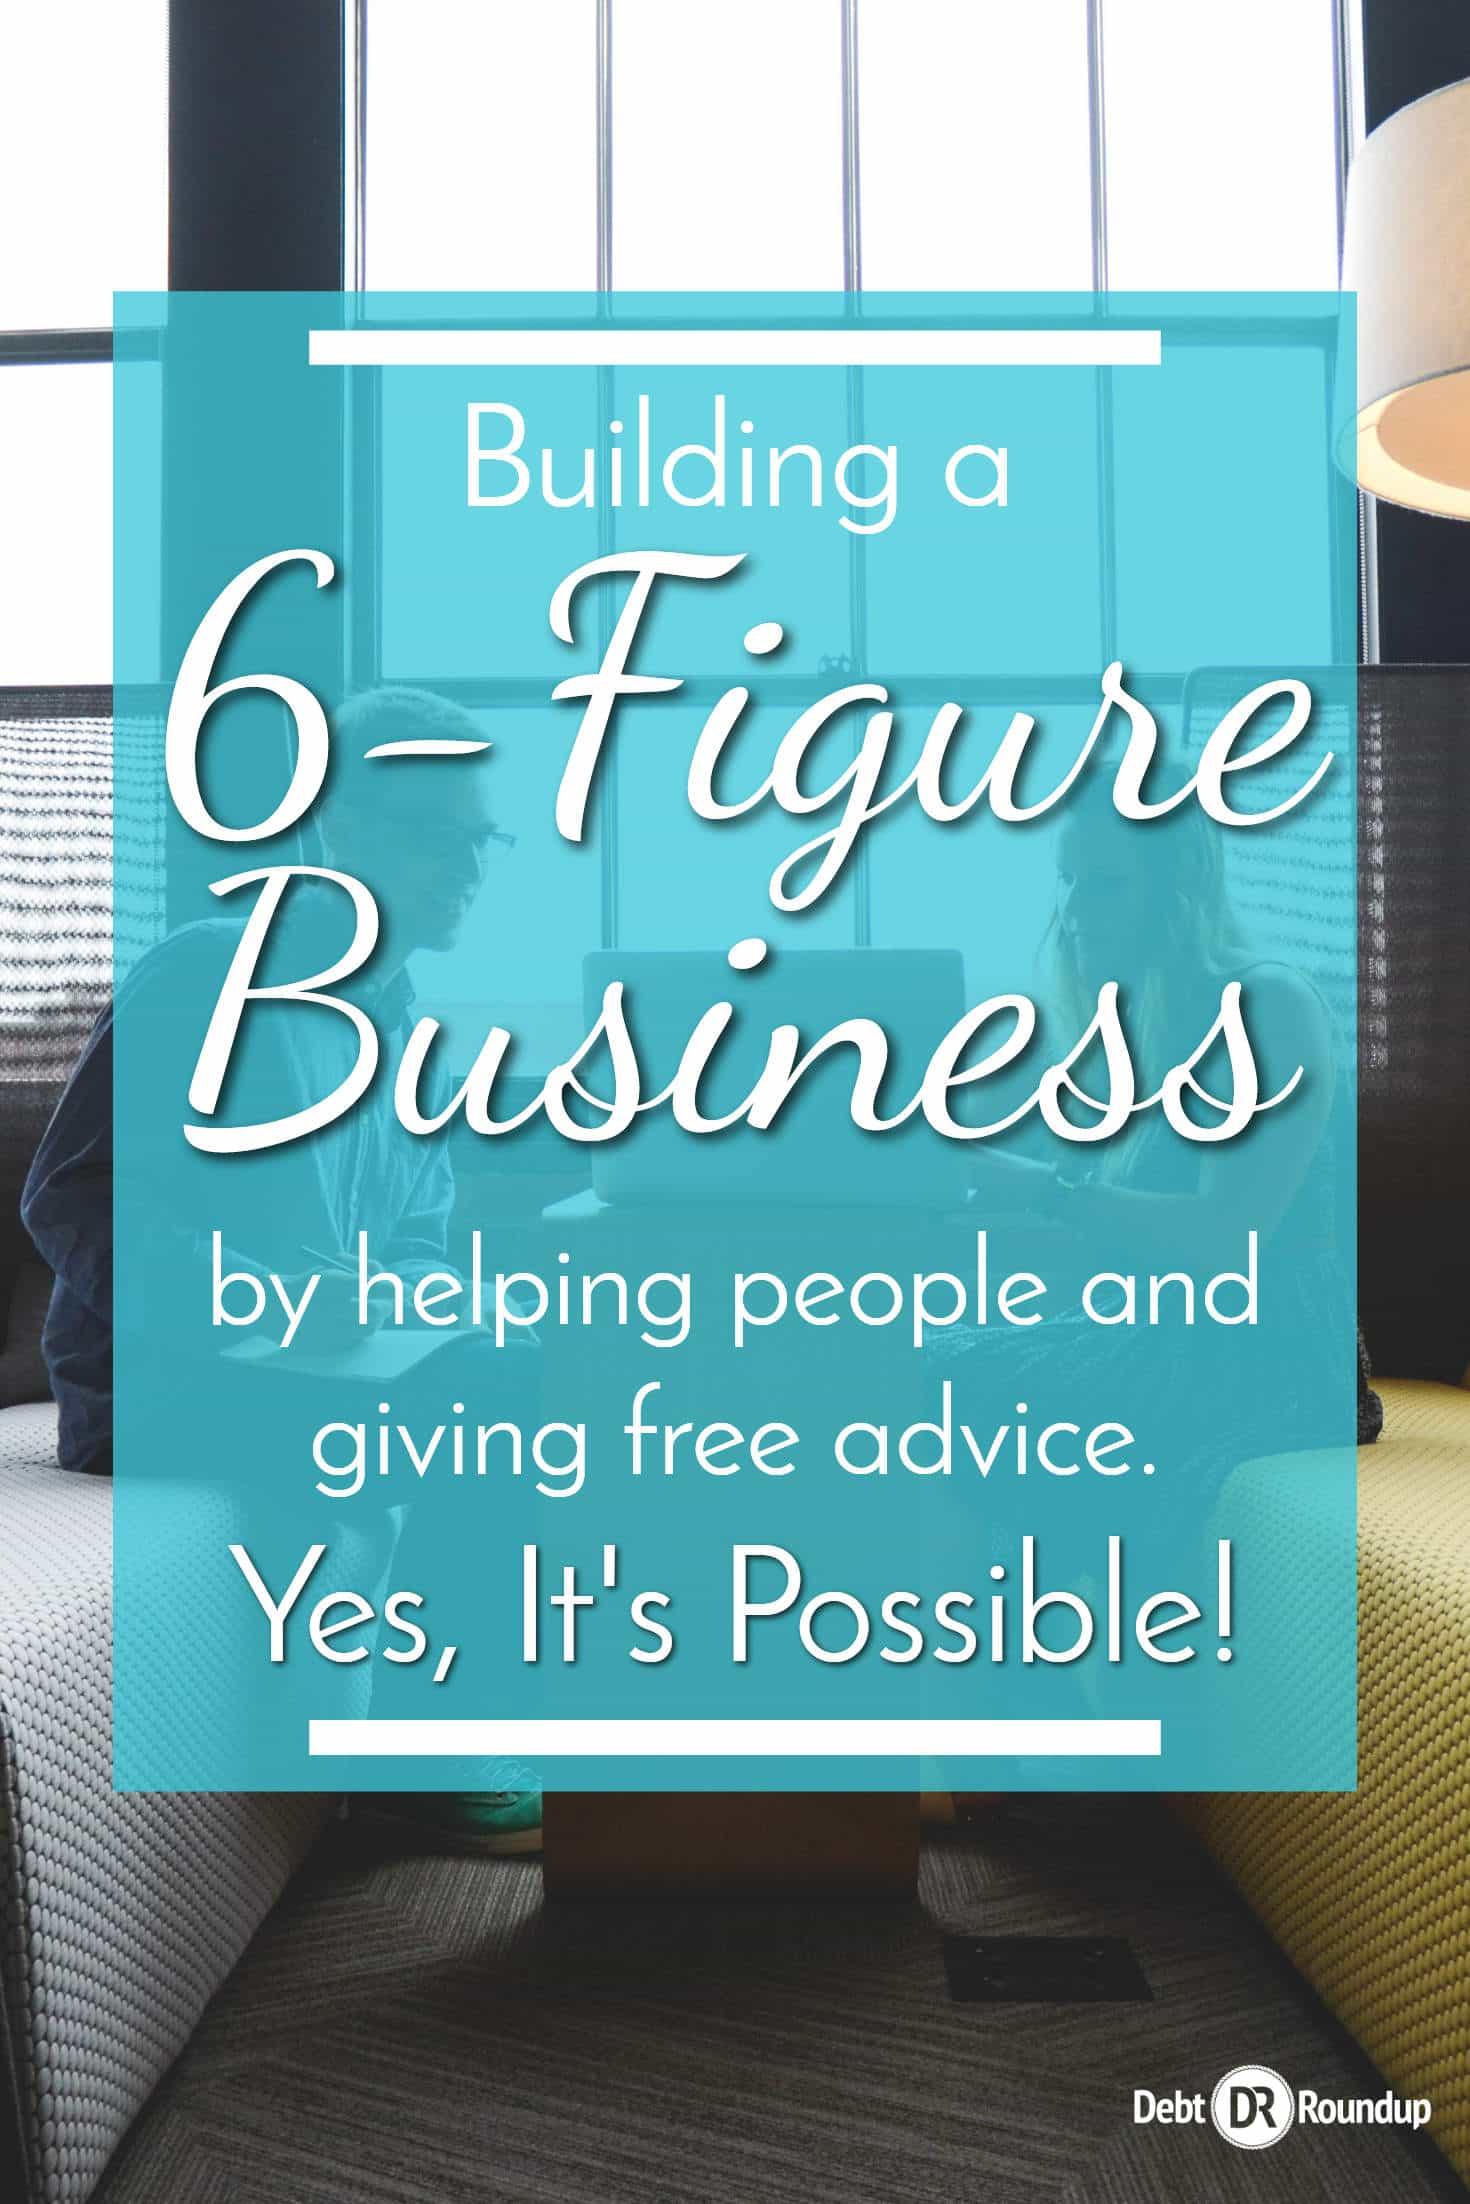 Creating a six-figure business by helping people